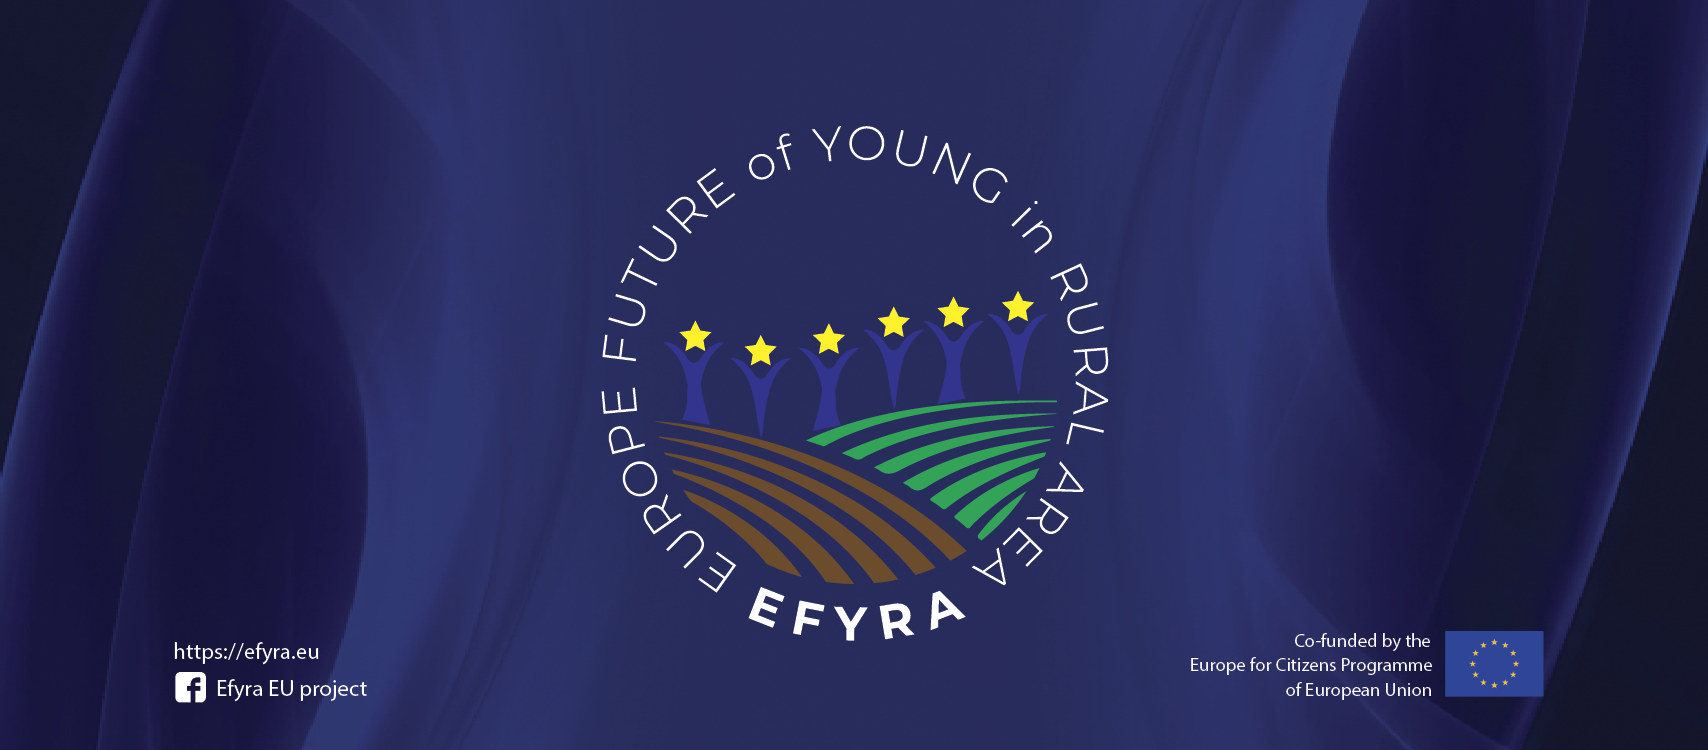 Europe Future of Young in Rural Areas - EFYRA